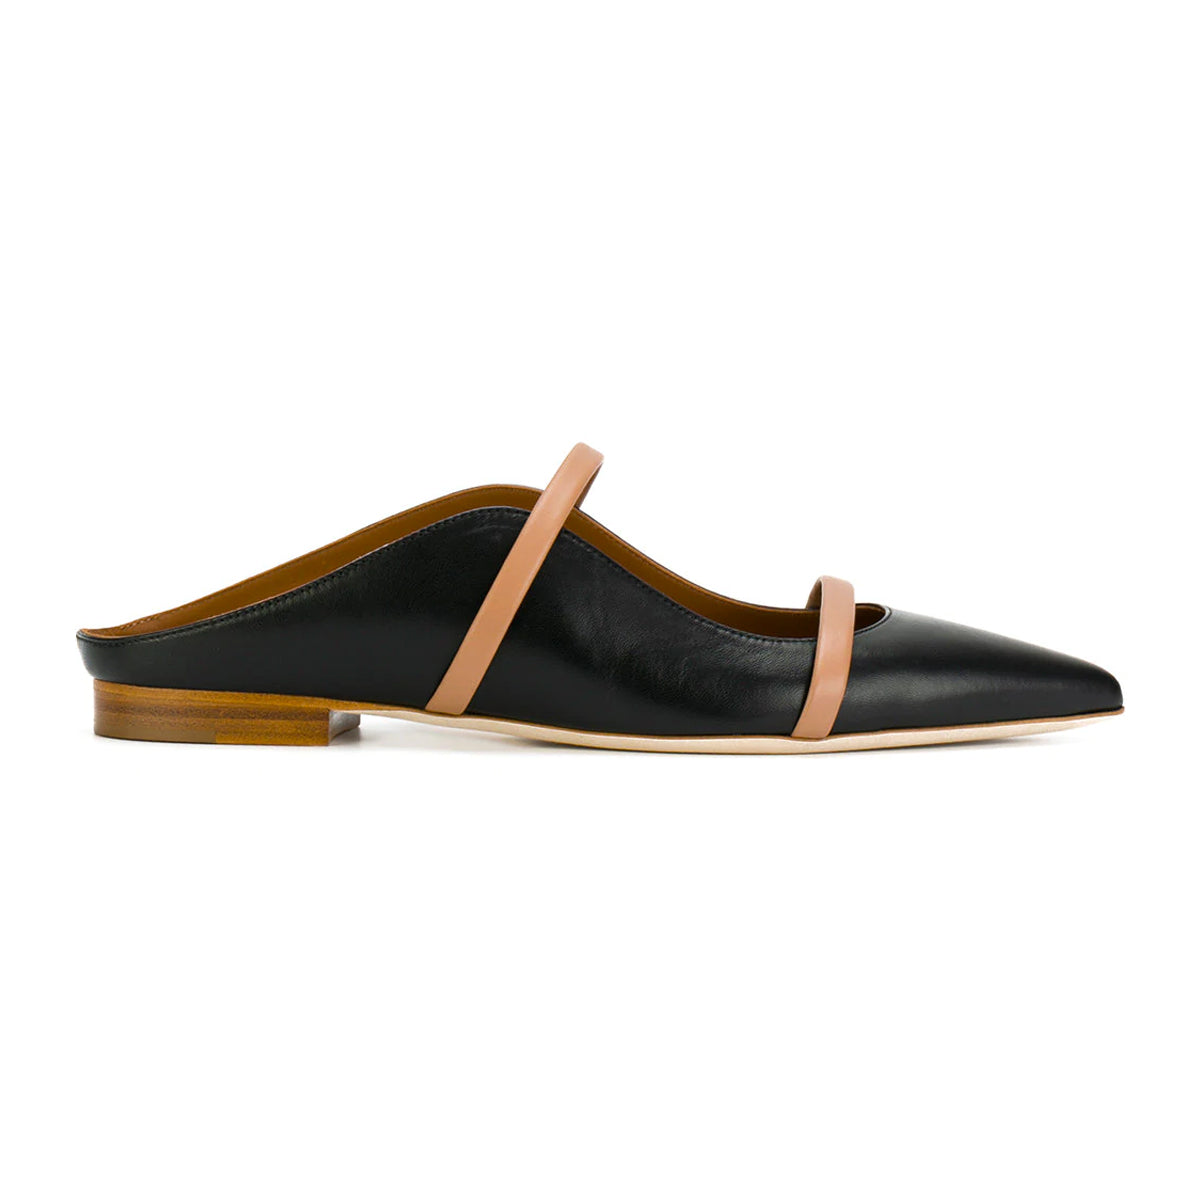 Maureen leather point-toe flats